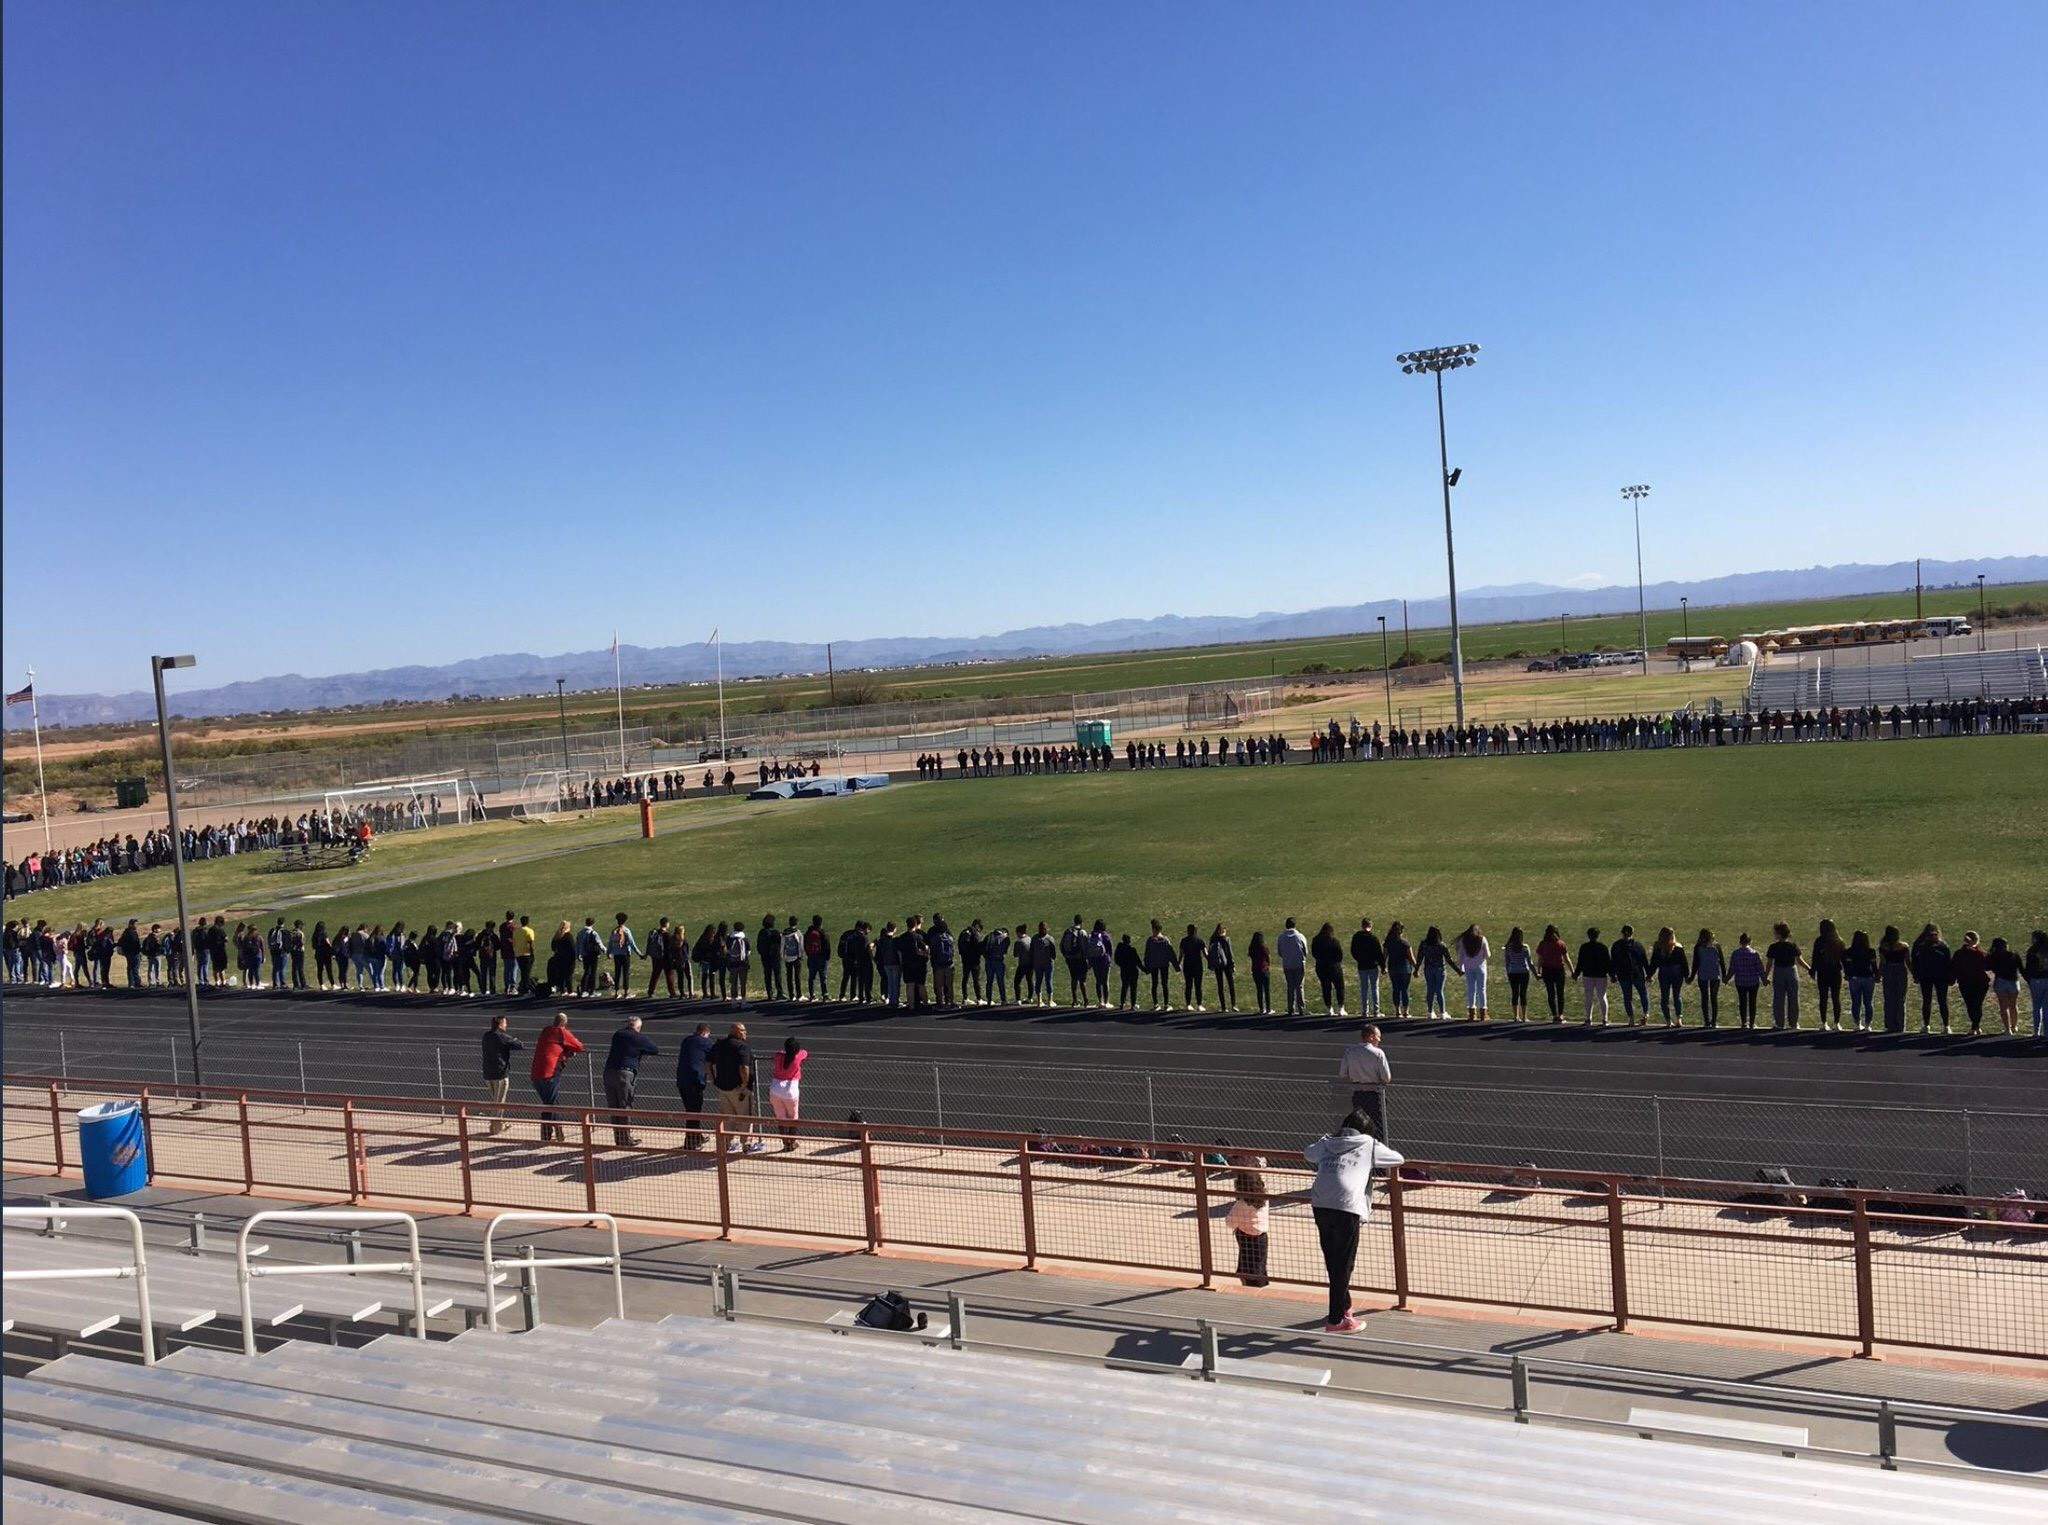 Nearly 650 Students Took Part In An Observance To Honor Those Killed In A Florida School Shooting On Wednesday, Feb. 21 At Poston Butte High School In San Tan Valley, Arizona. Photos Courtesy Florence Unified School District